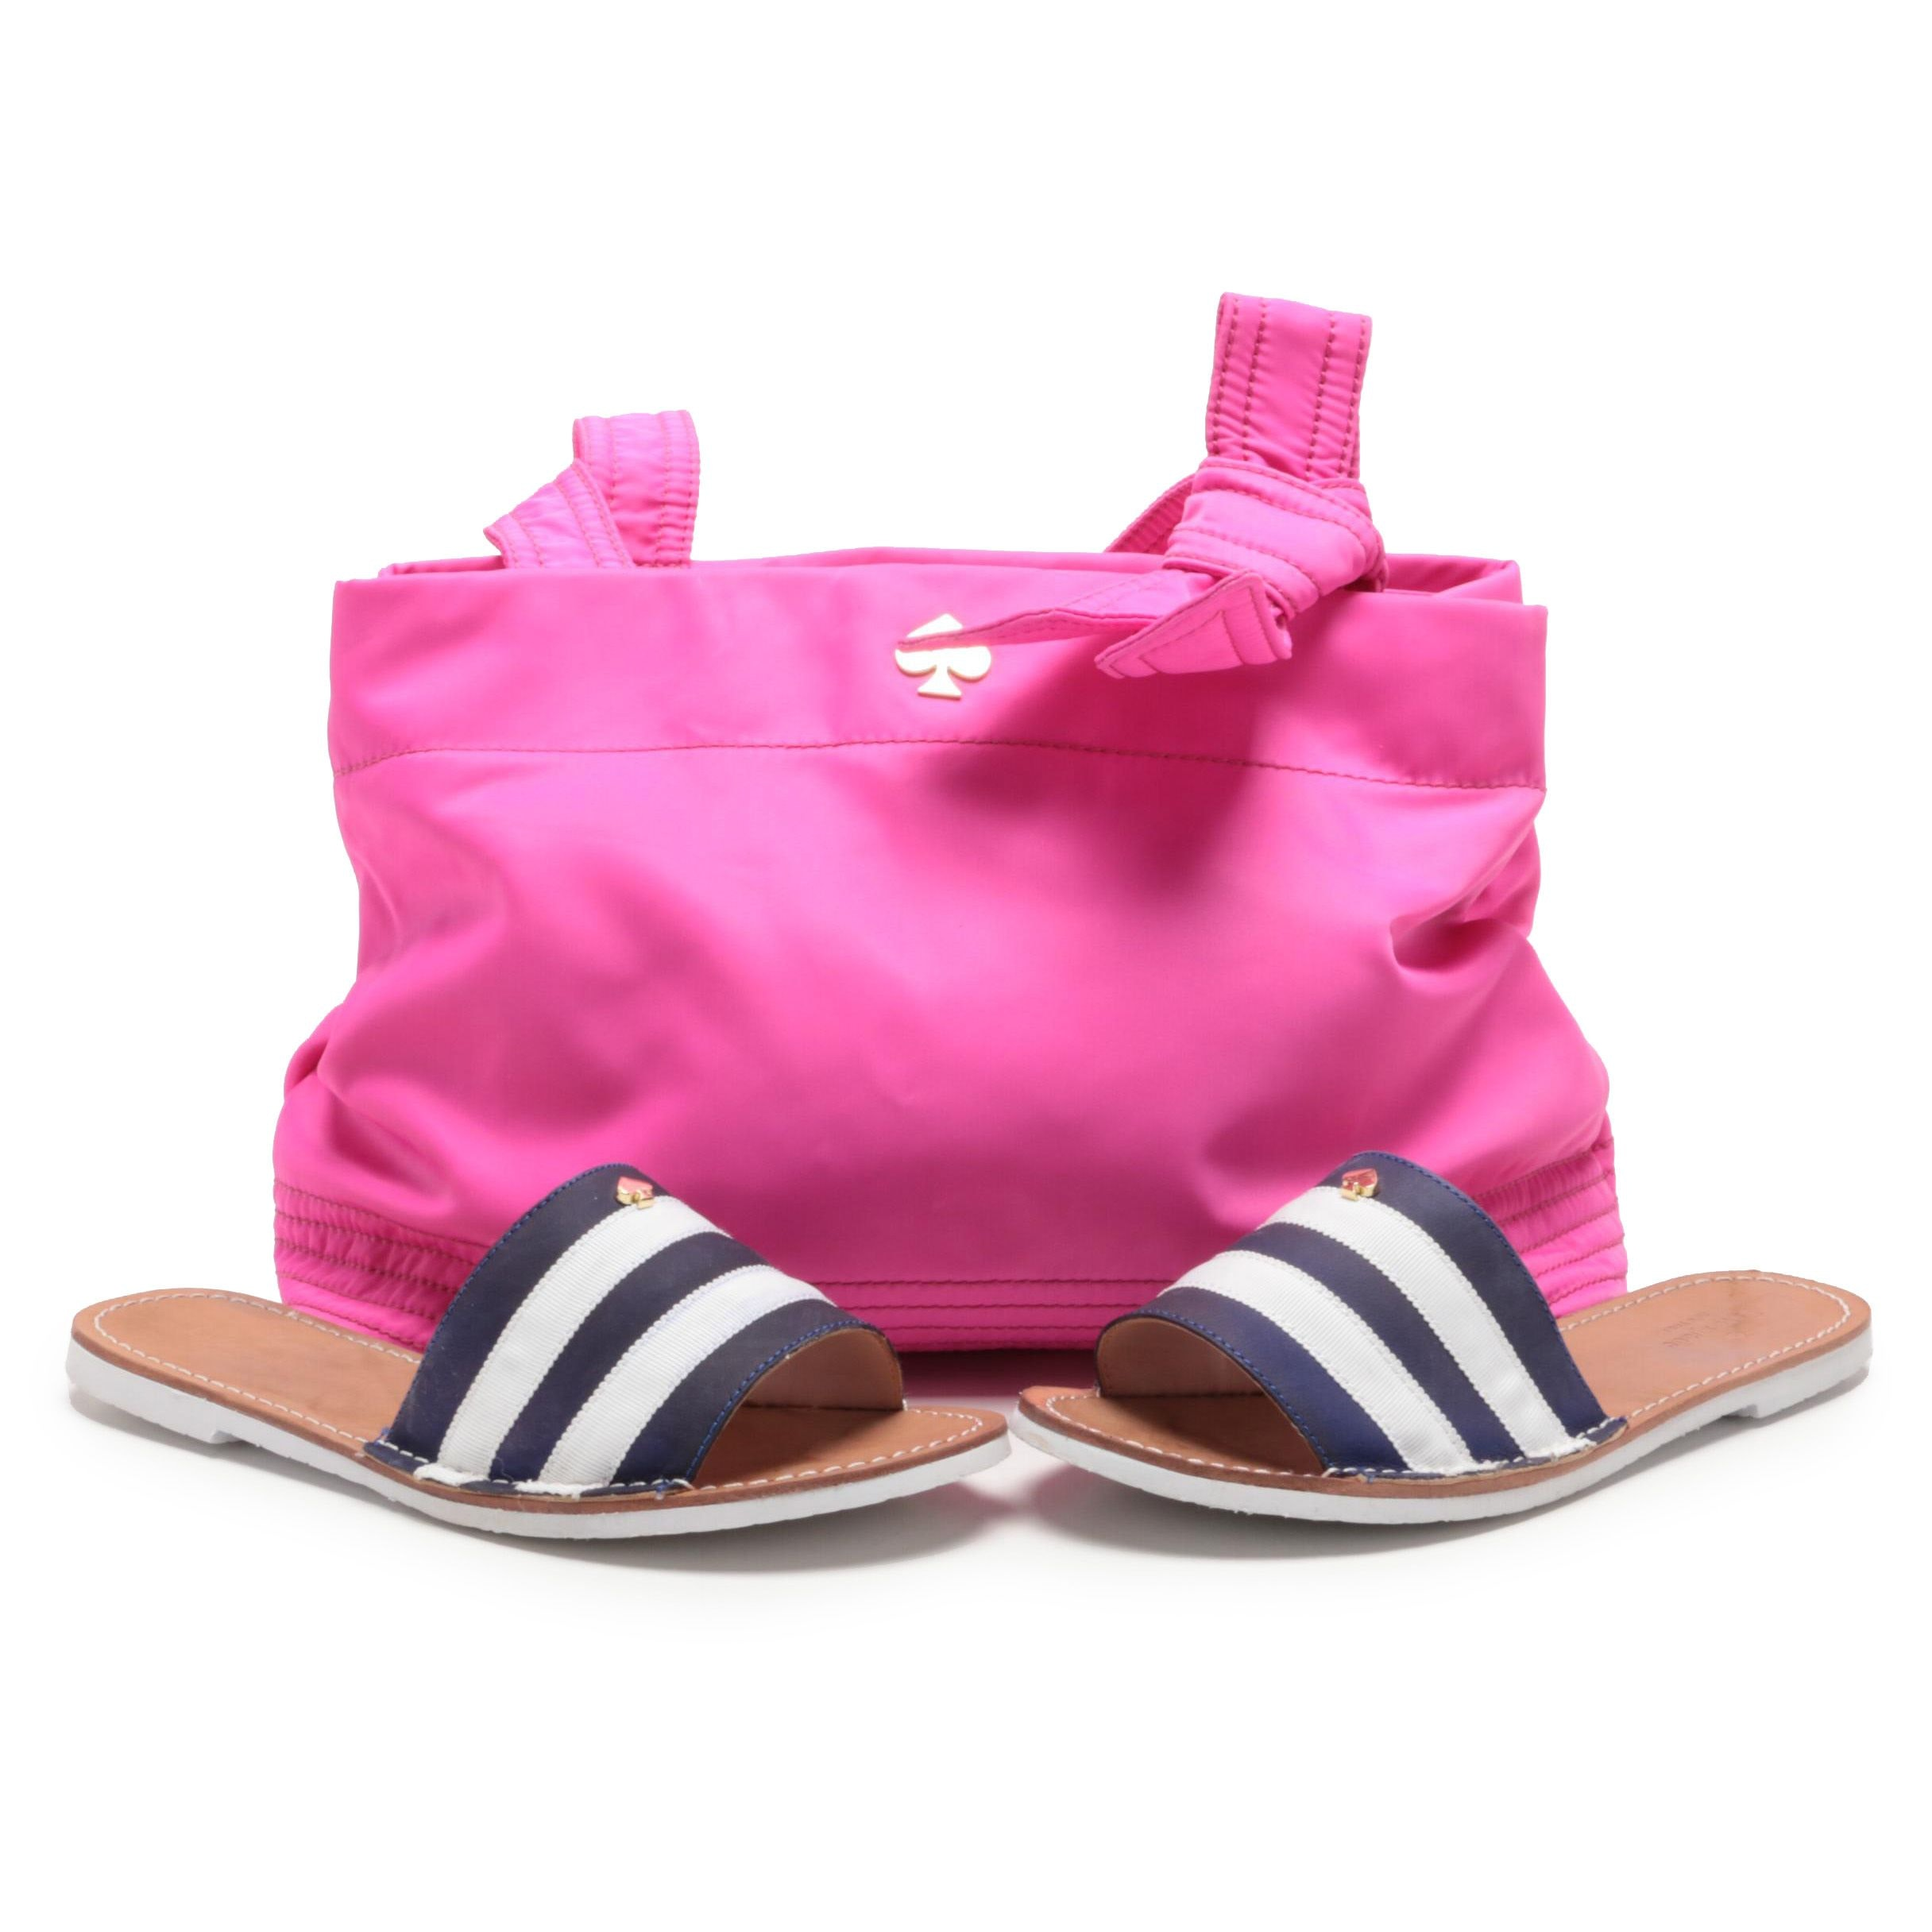 Kate Spade New York Hot Pink Vinyl Tote Bag and Navy and White Stripe Slides